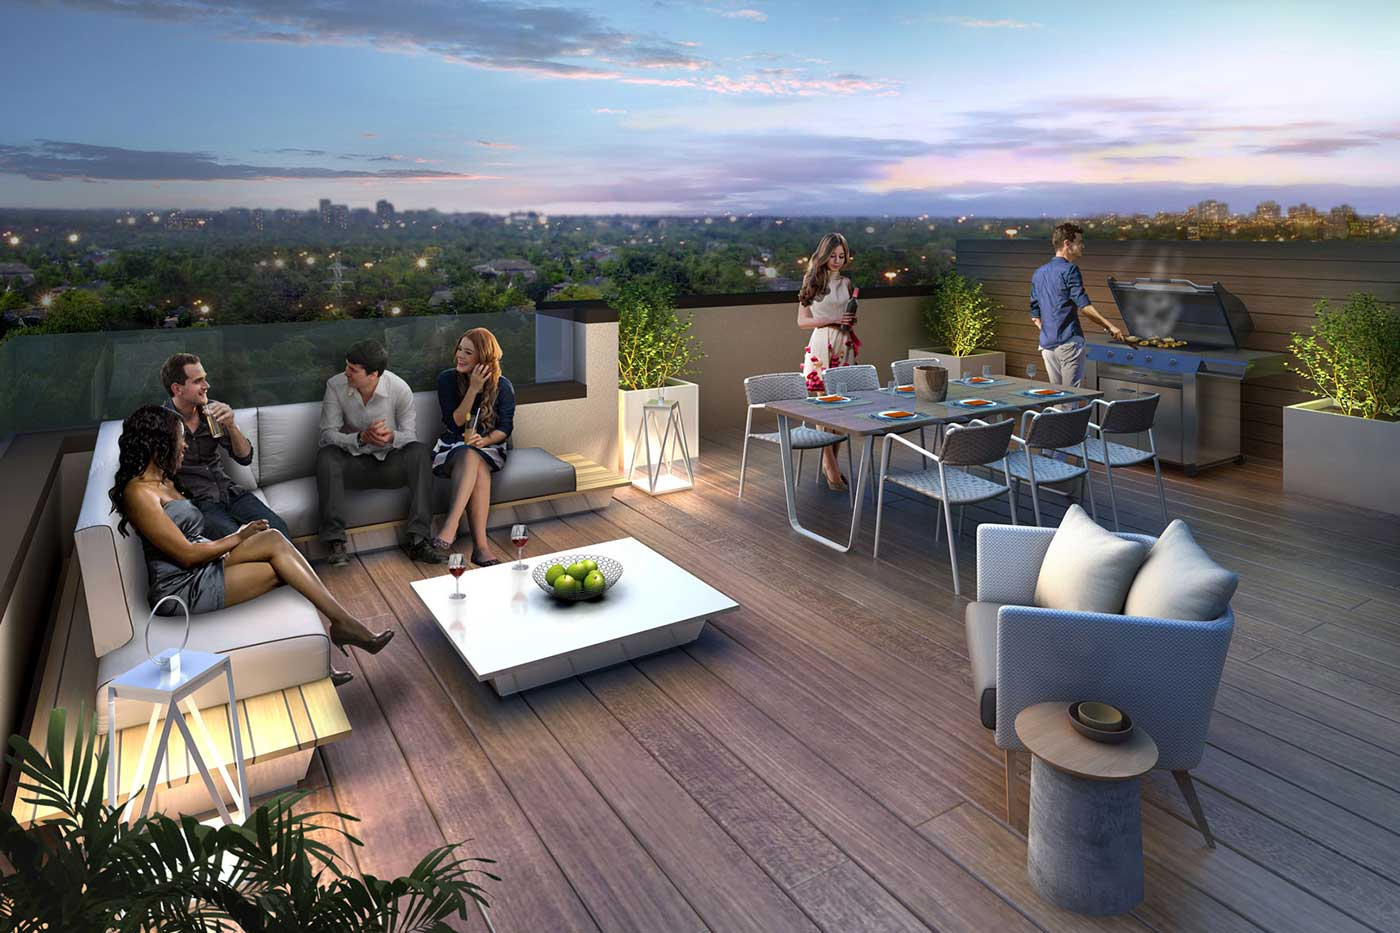 burlington-townhomes-station-west-condos-new-york-stacked-townhome-rooftop.jpg